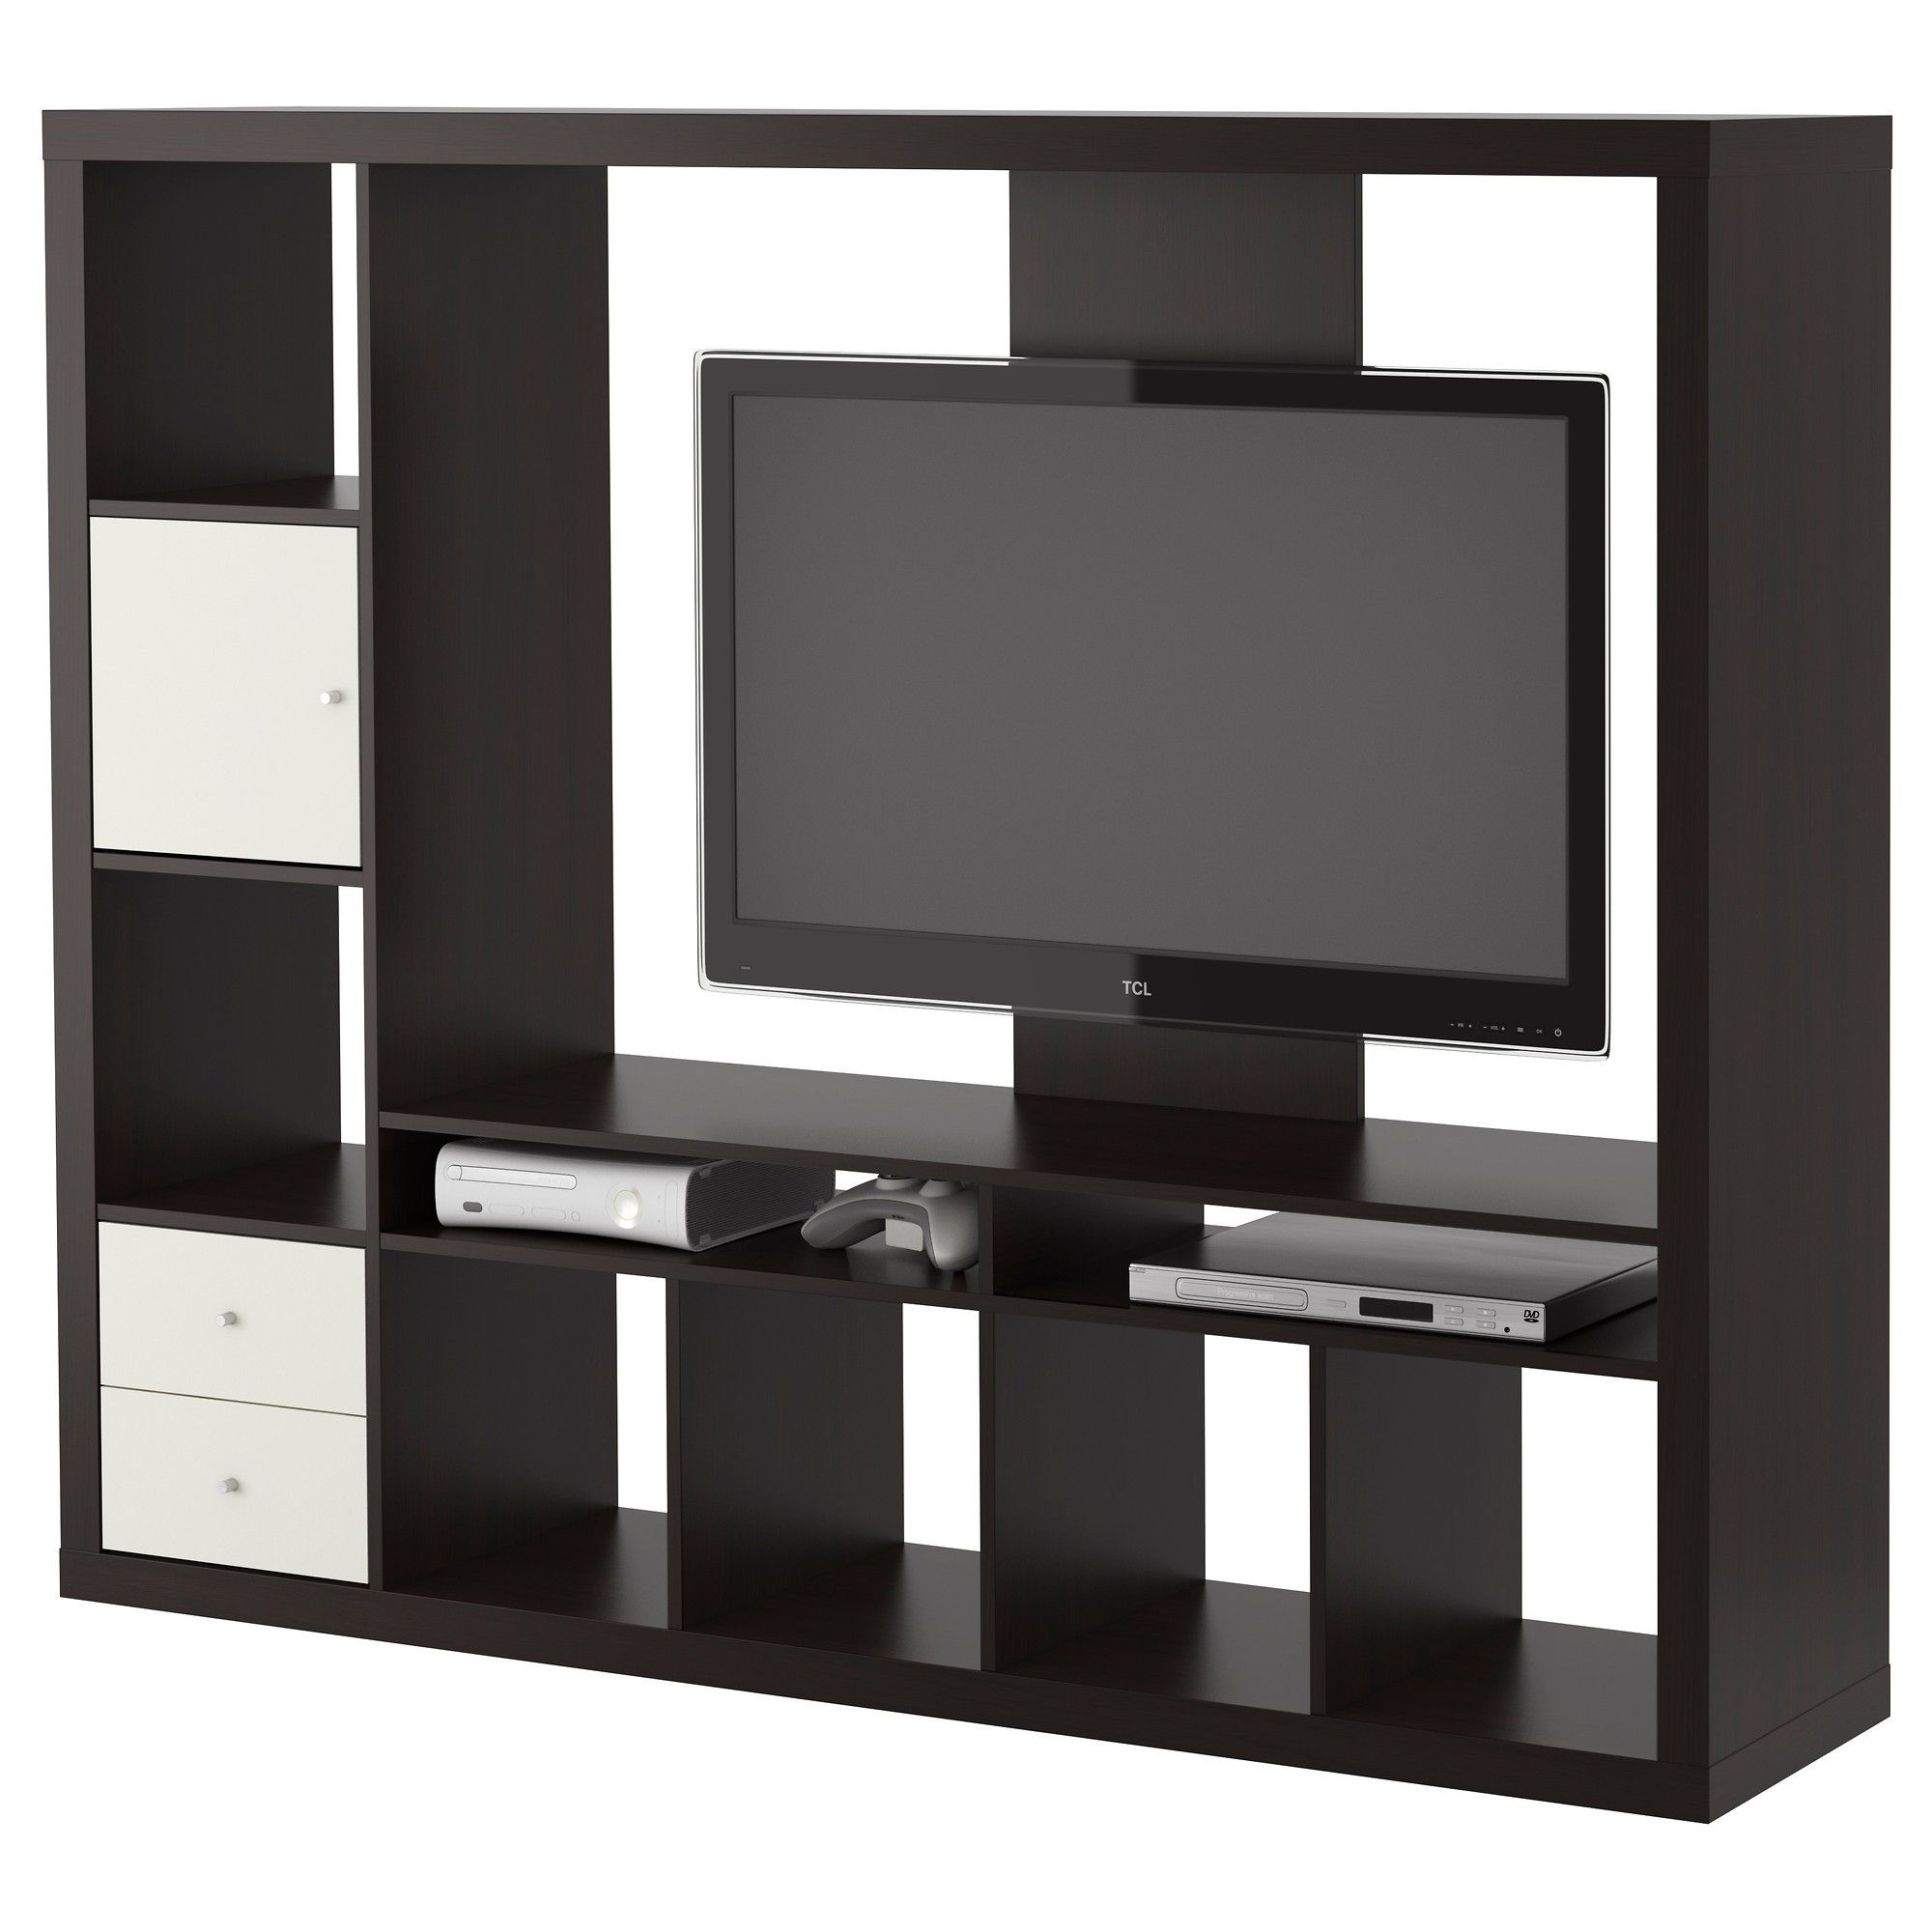 Black Polished Solid Wood Tv Cabinet With Several Open Shelves And